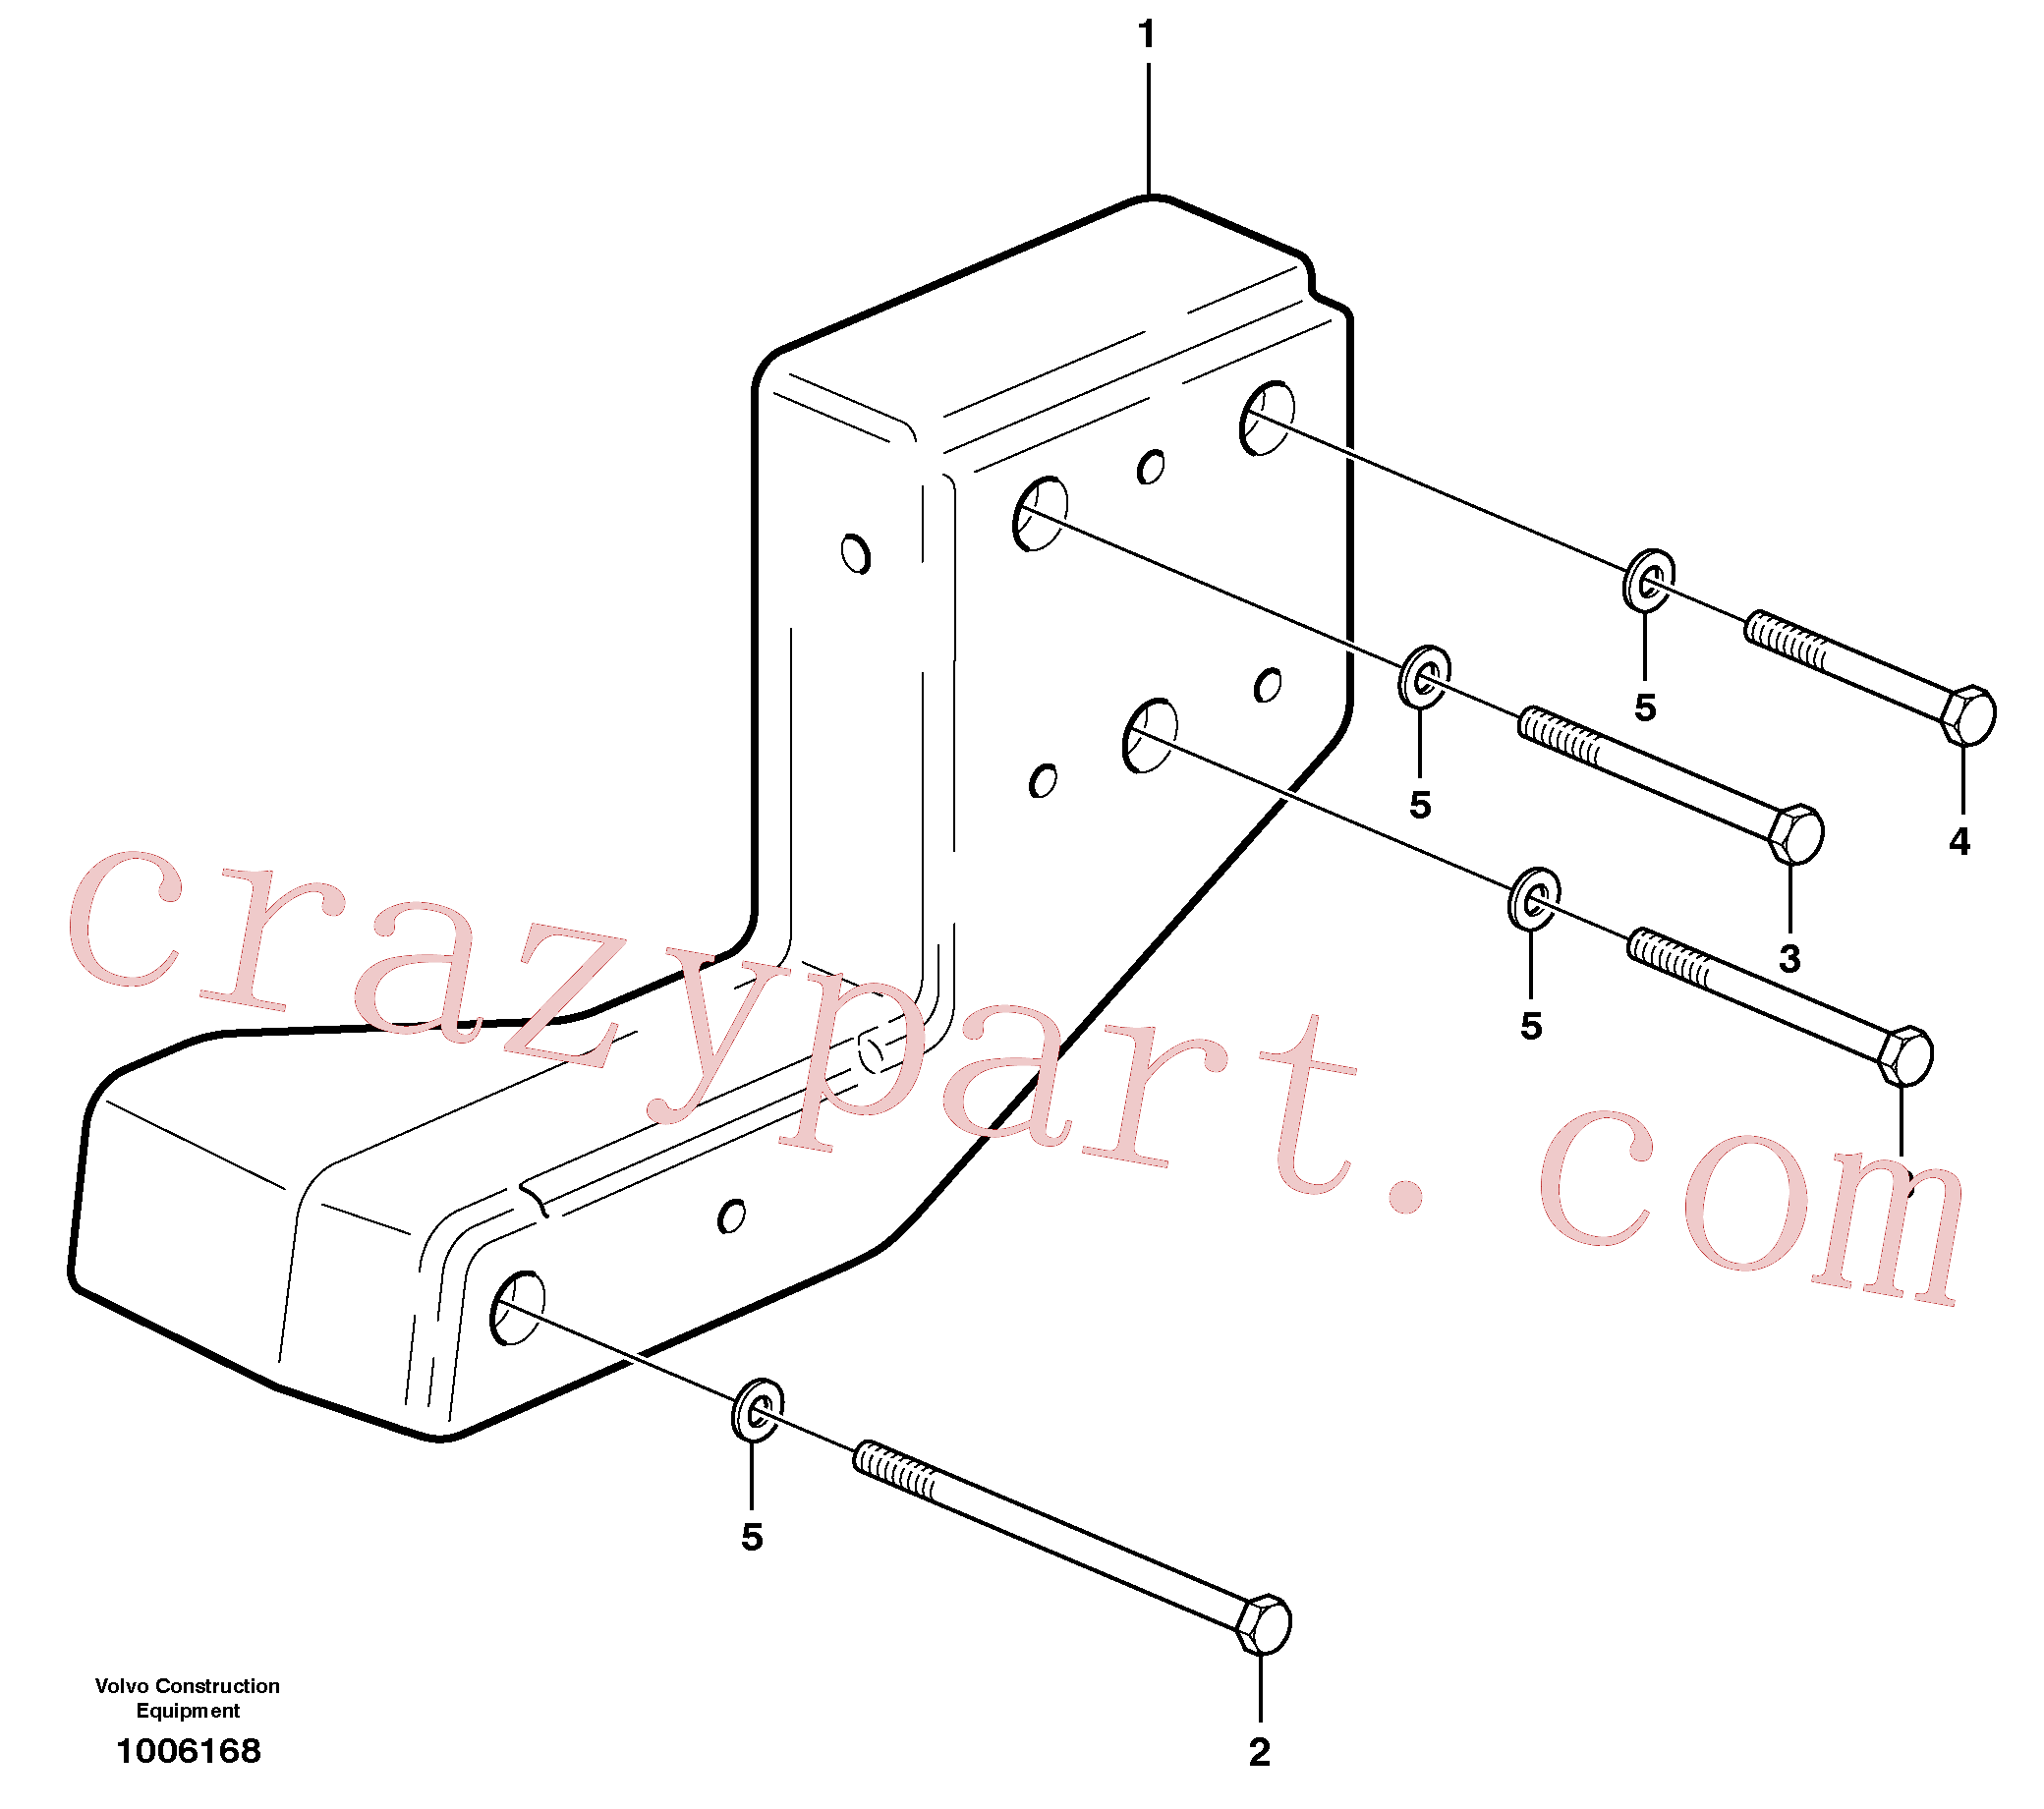 VOE928926 for Volvo Counterweight(1006168 assembly)